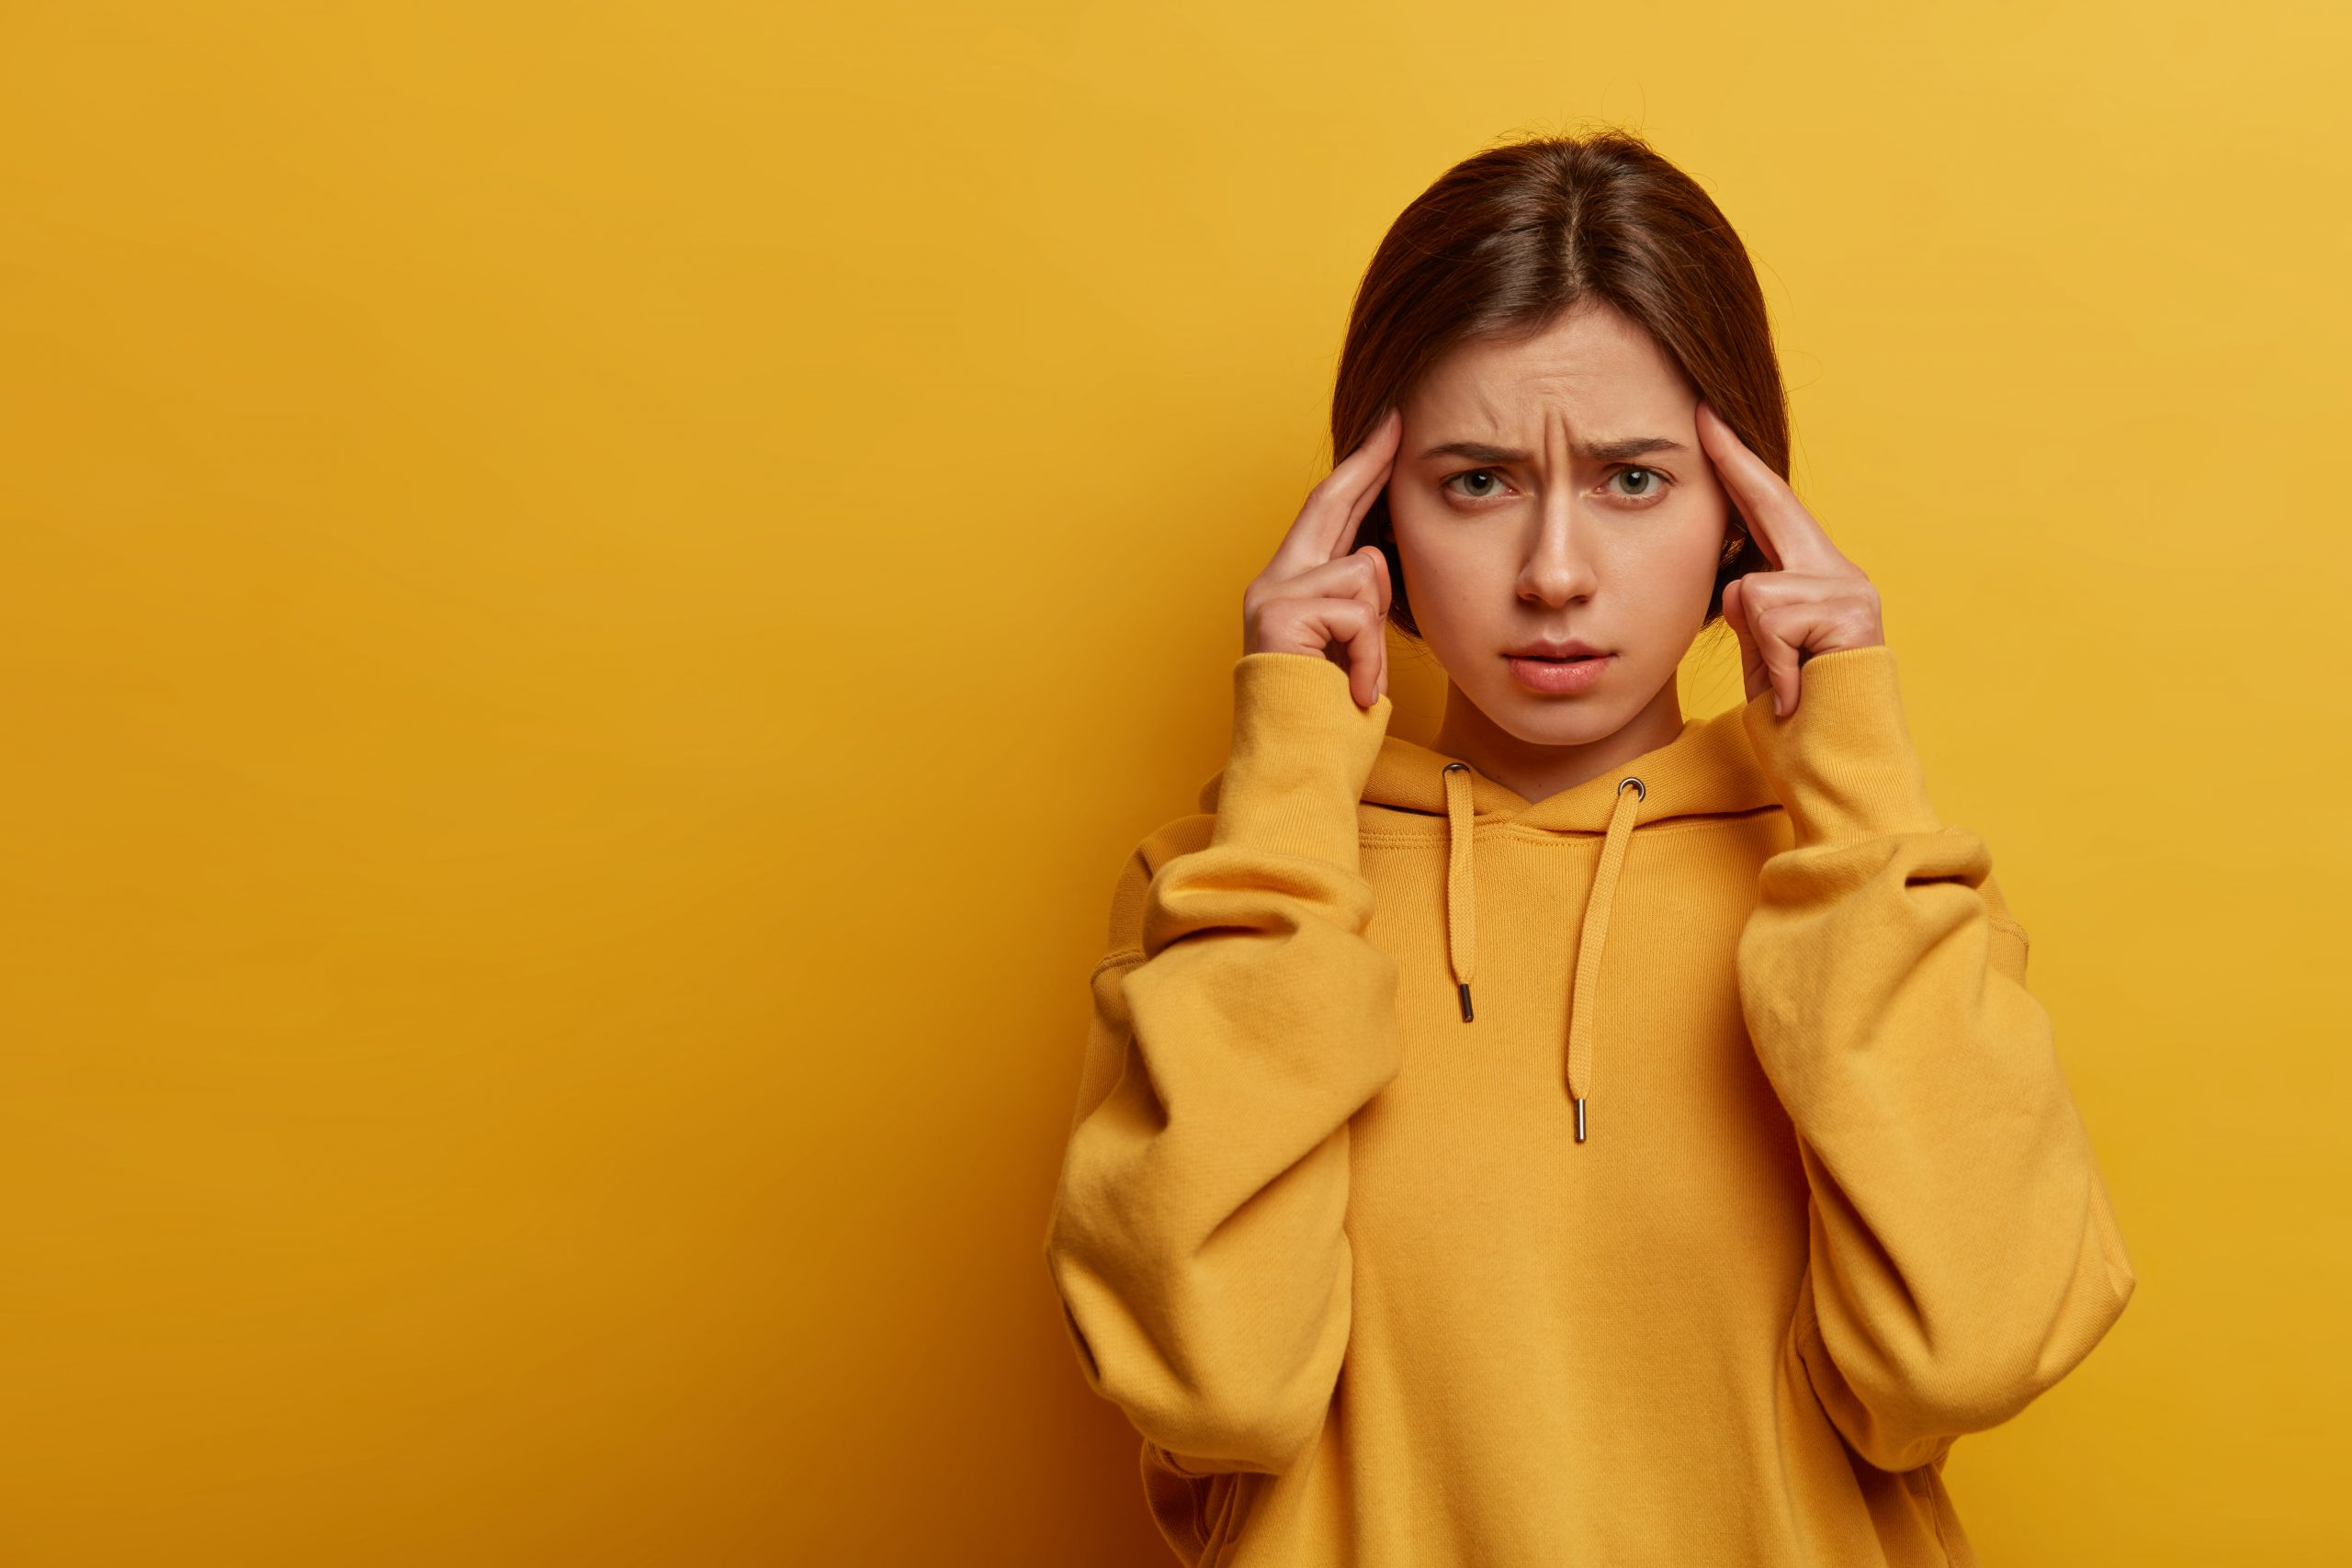 Frustrated displeased woman touches temples with index fingers, focus on something and thinks up idea, tries to make serious decision, suffers from headache, wears sweatshirt, isolated on yellow wall